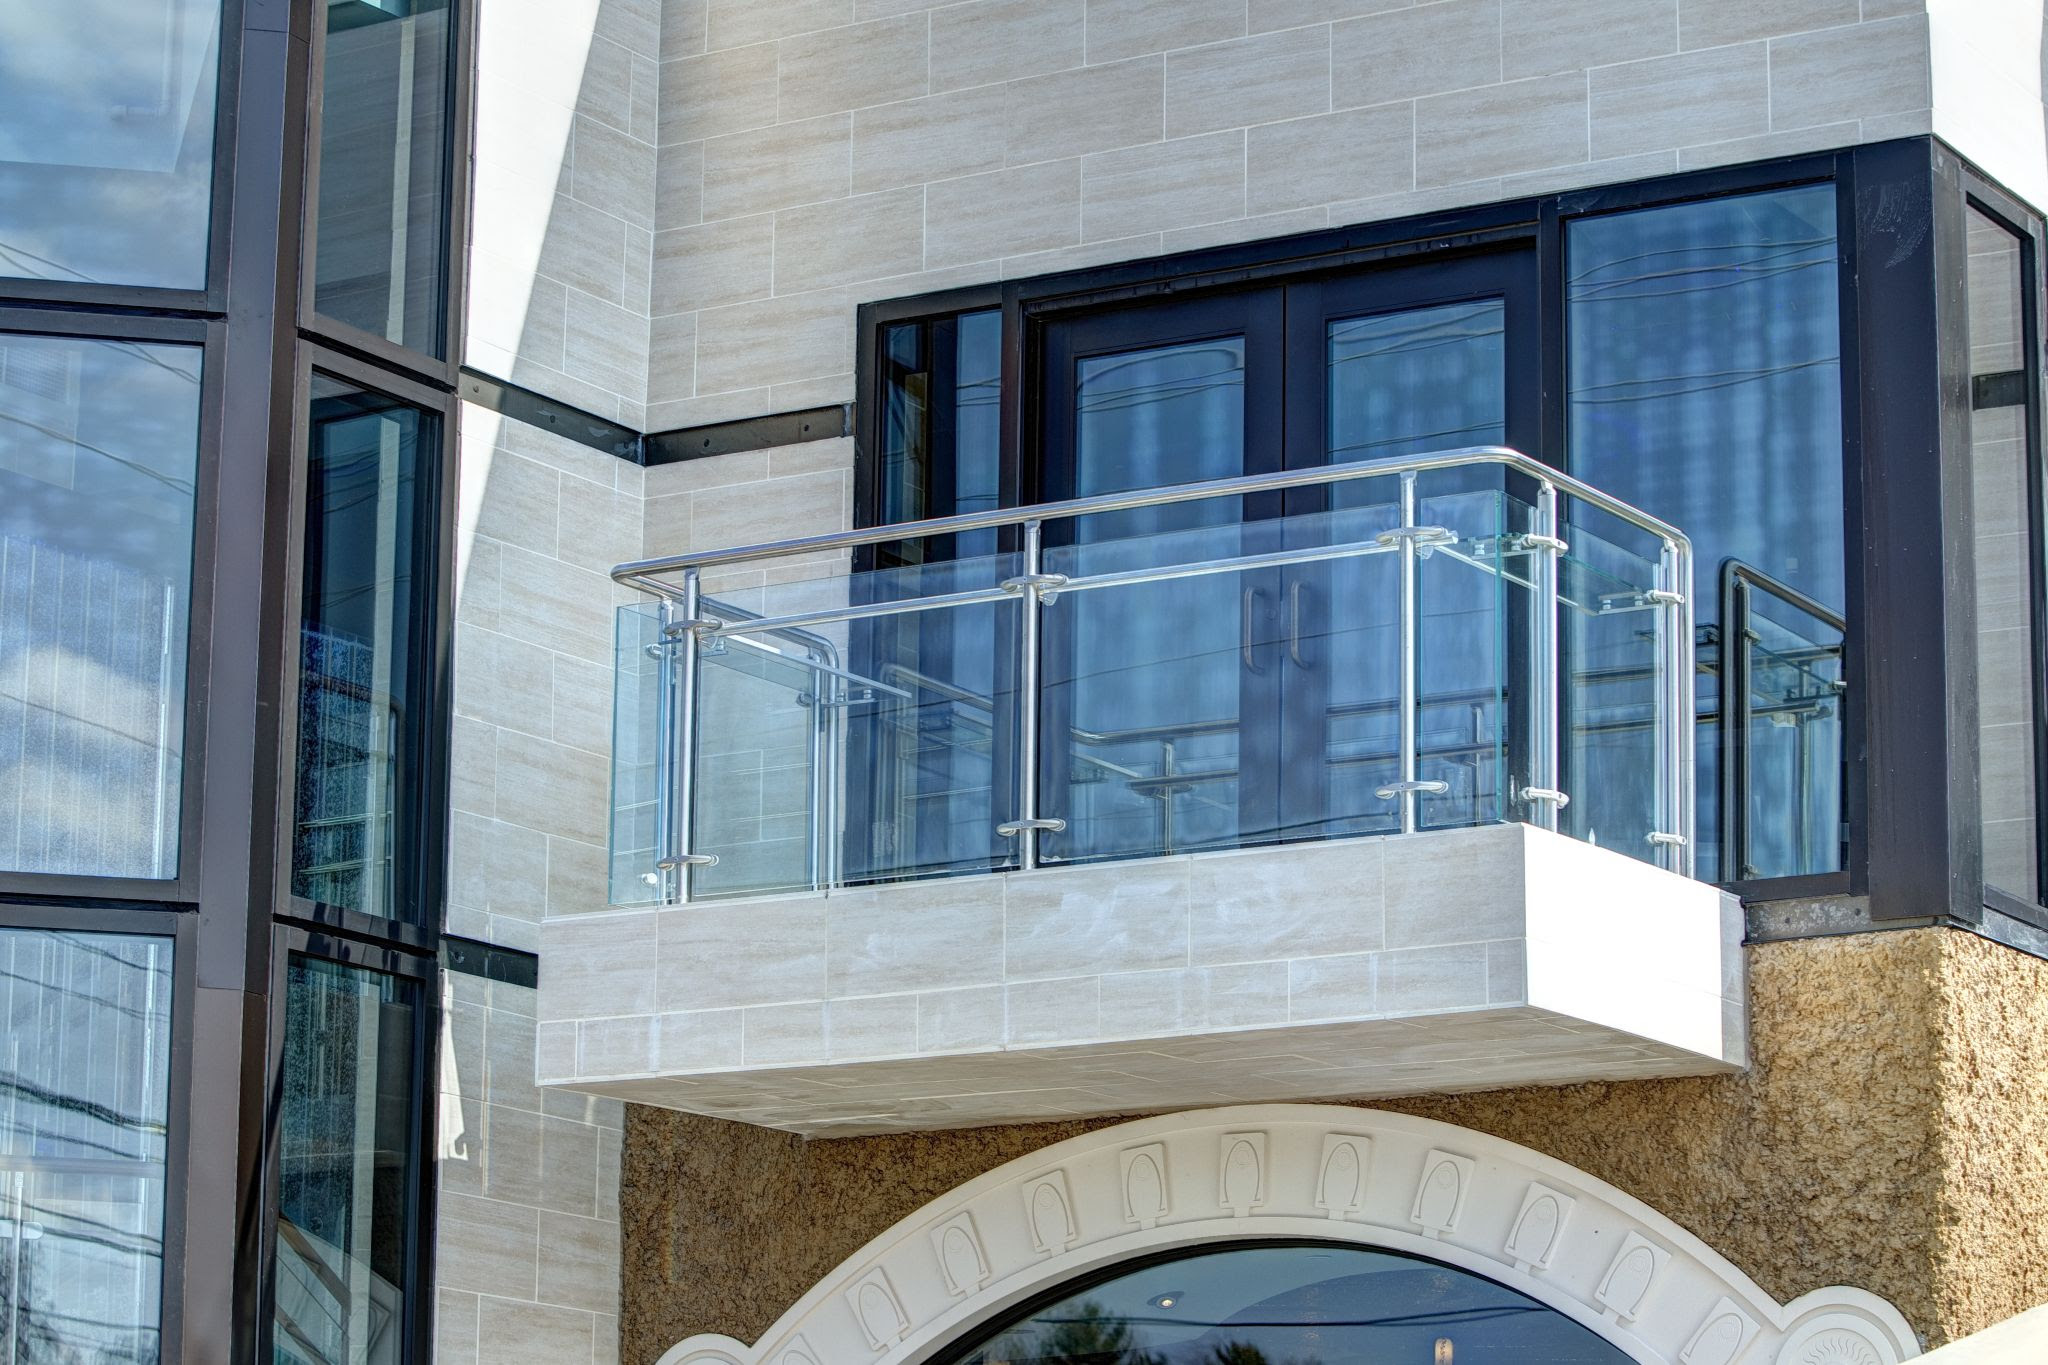 Designing For Exterior Tiles Applications From Specification To